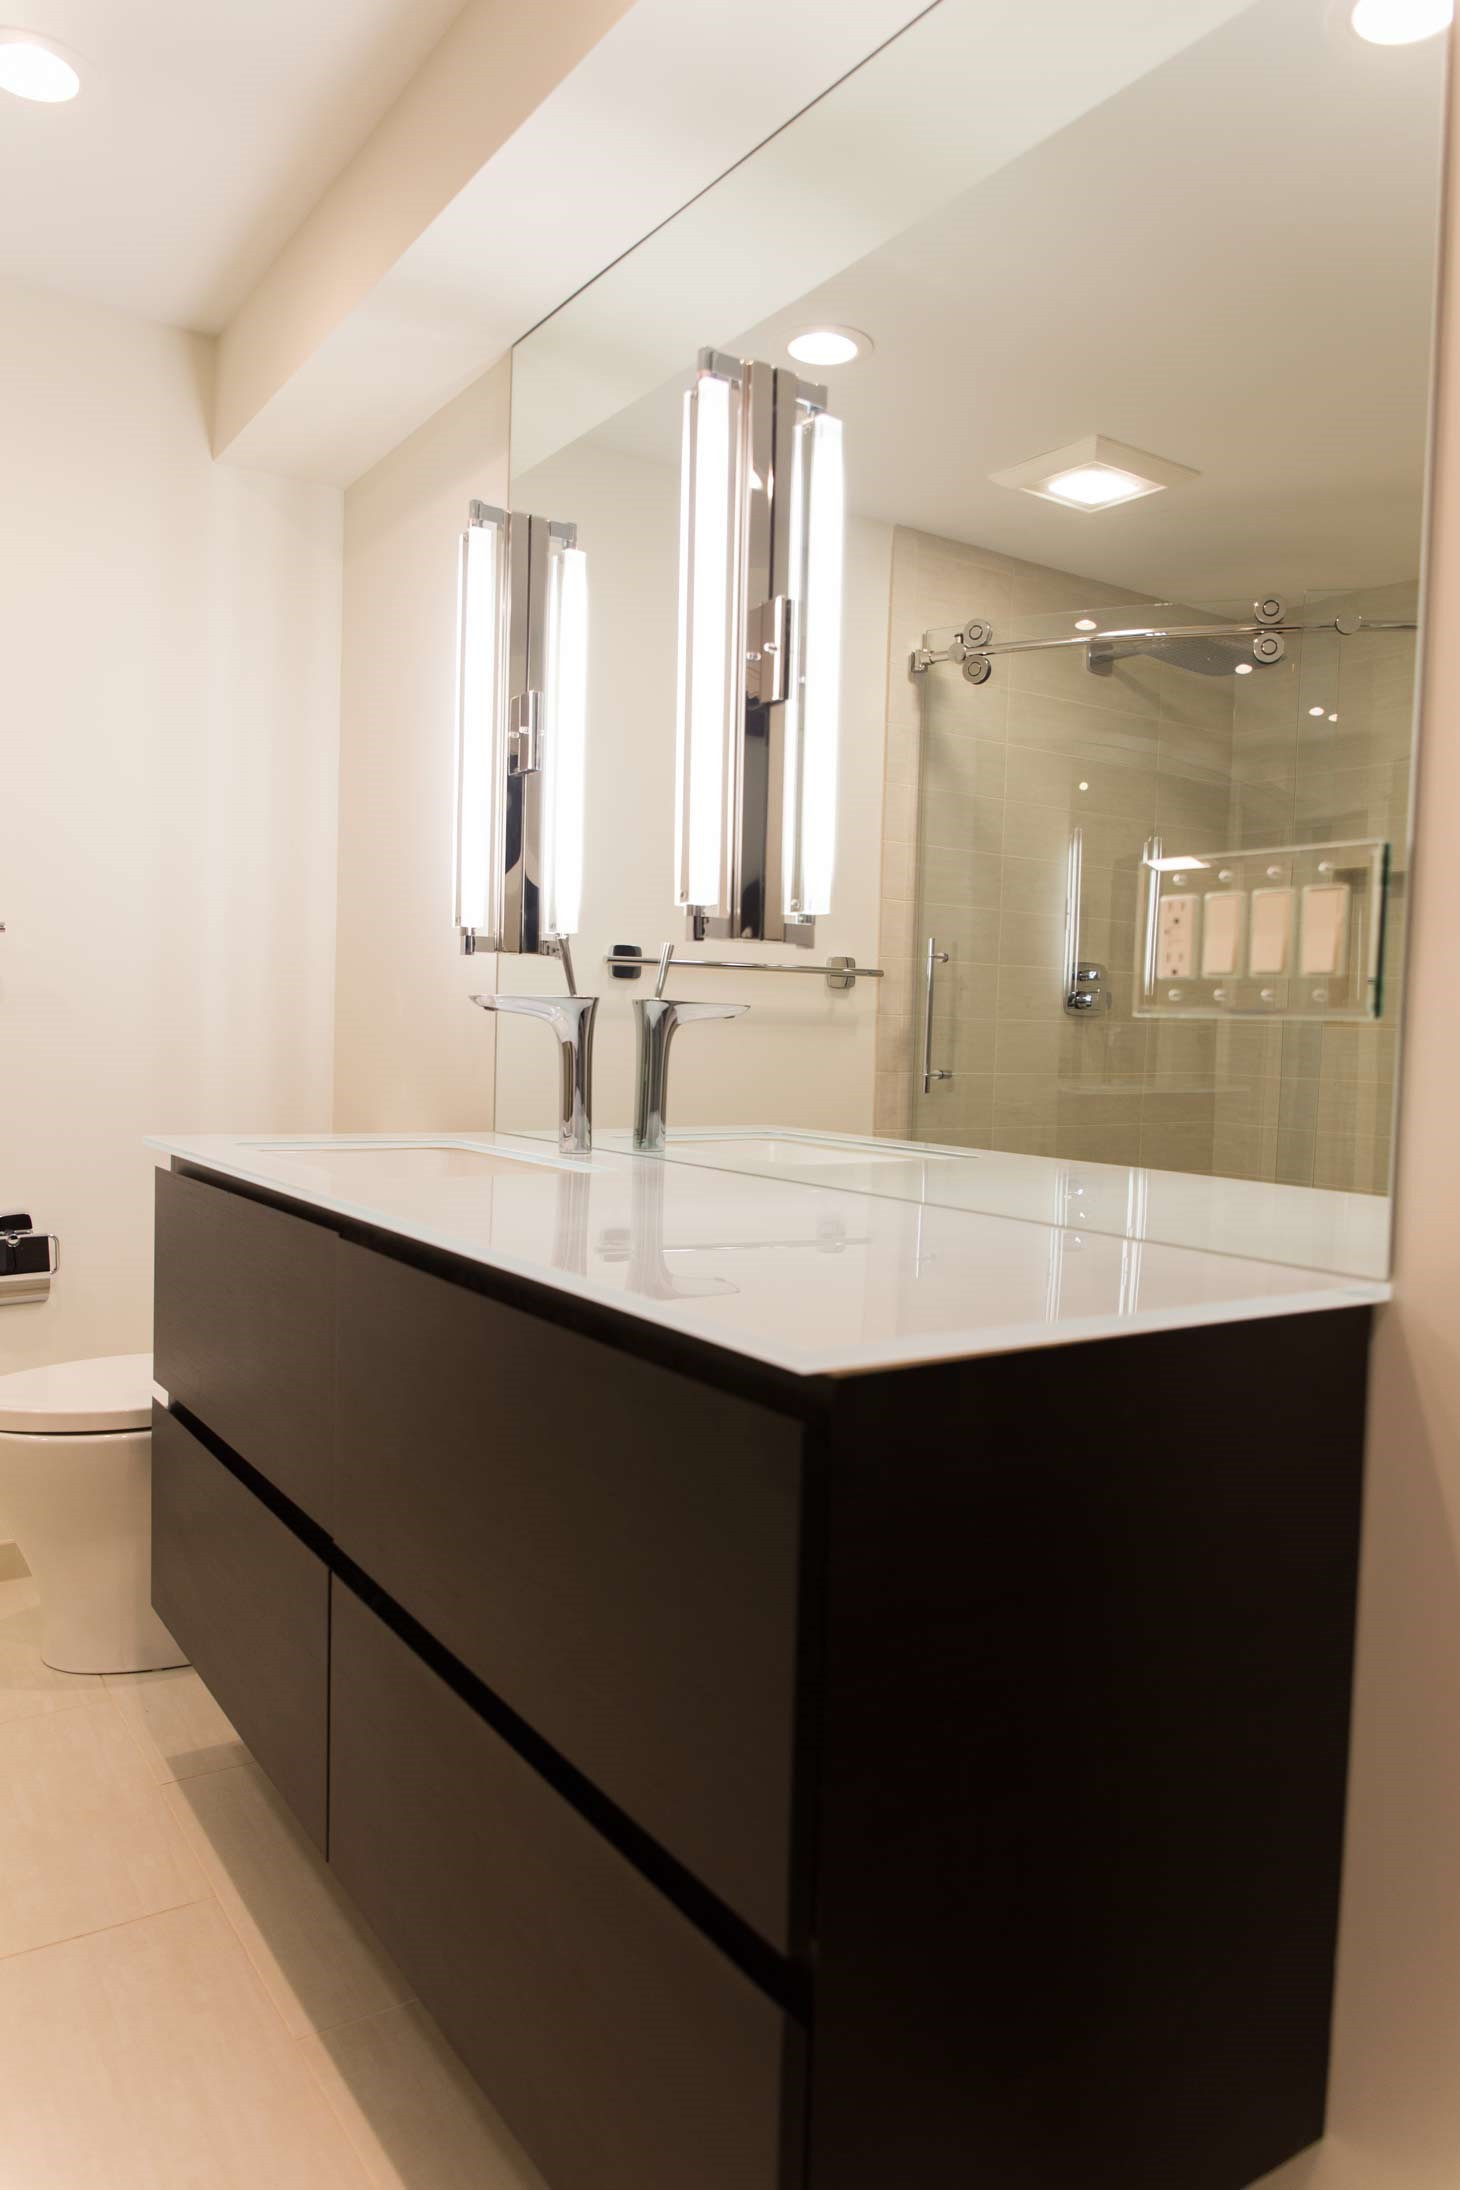 Bathroom Remodel with Floating Vanity, Rochester, NY